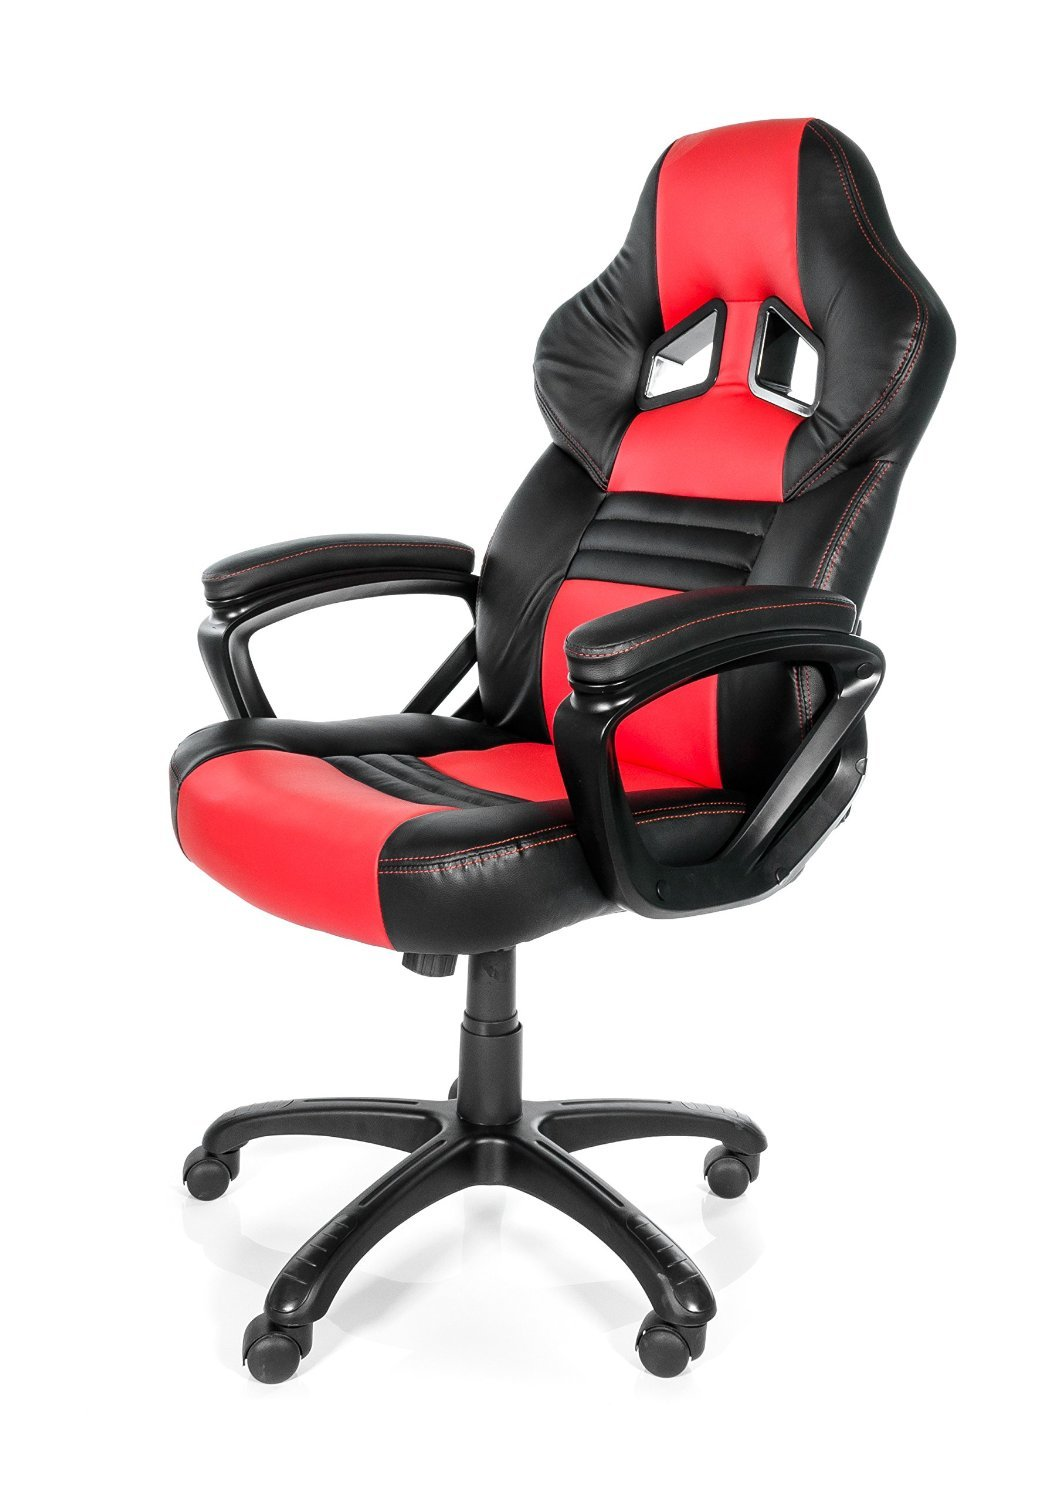 game room chairs home furniture design. Black Bedroom Furniture Sets. Home Design Ideas